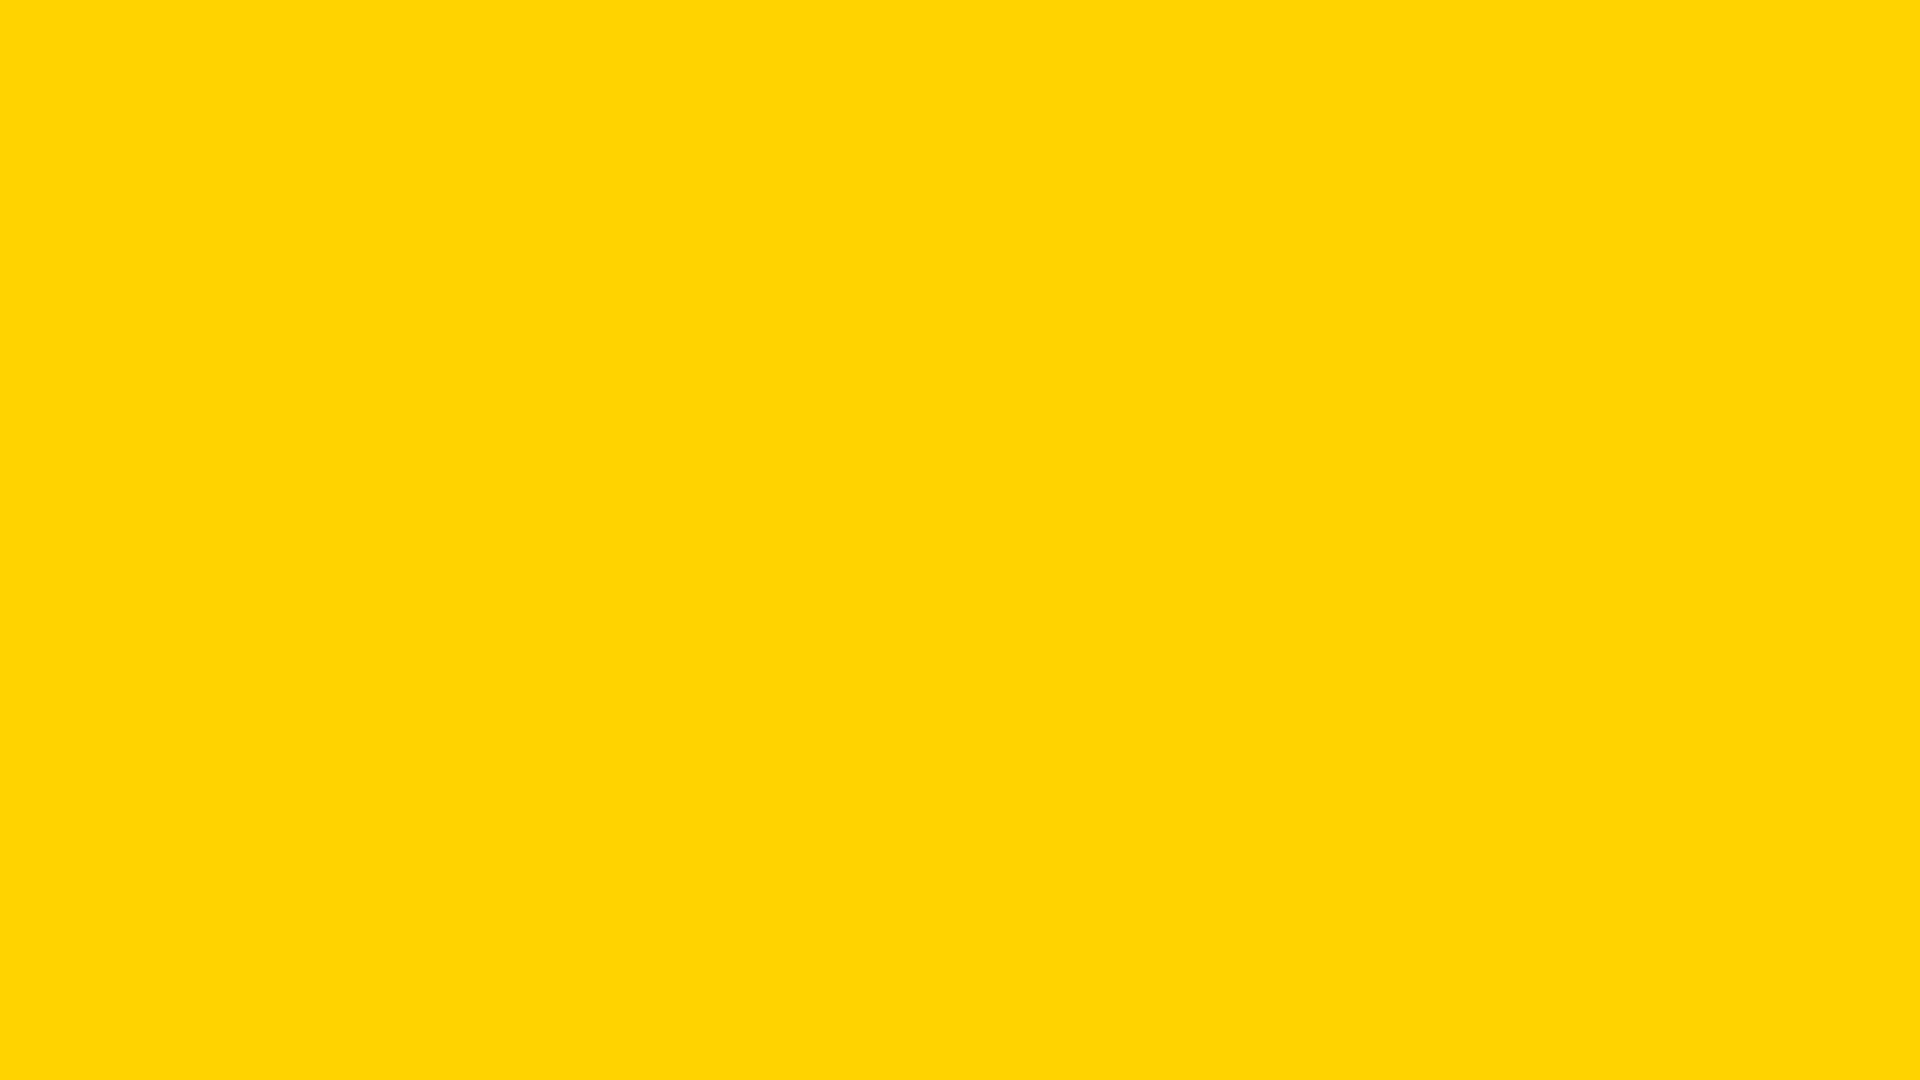 1920x1080 Yellow NCS Solid Color Background